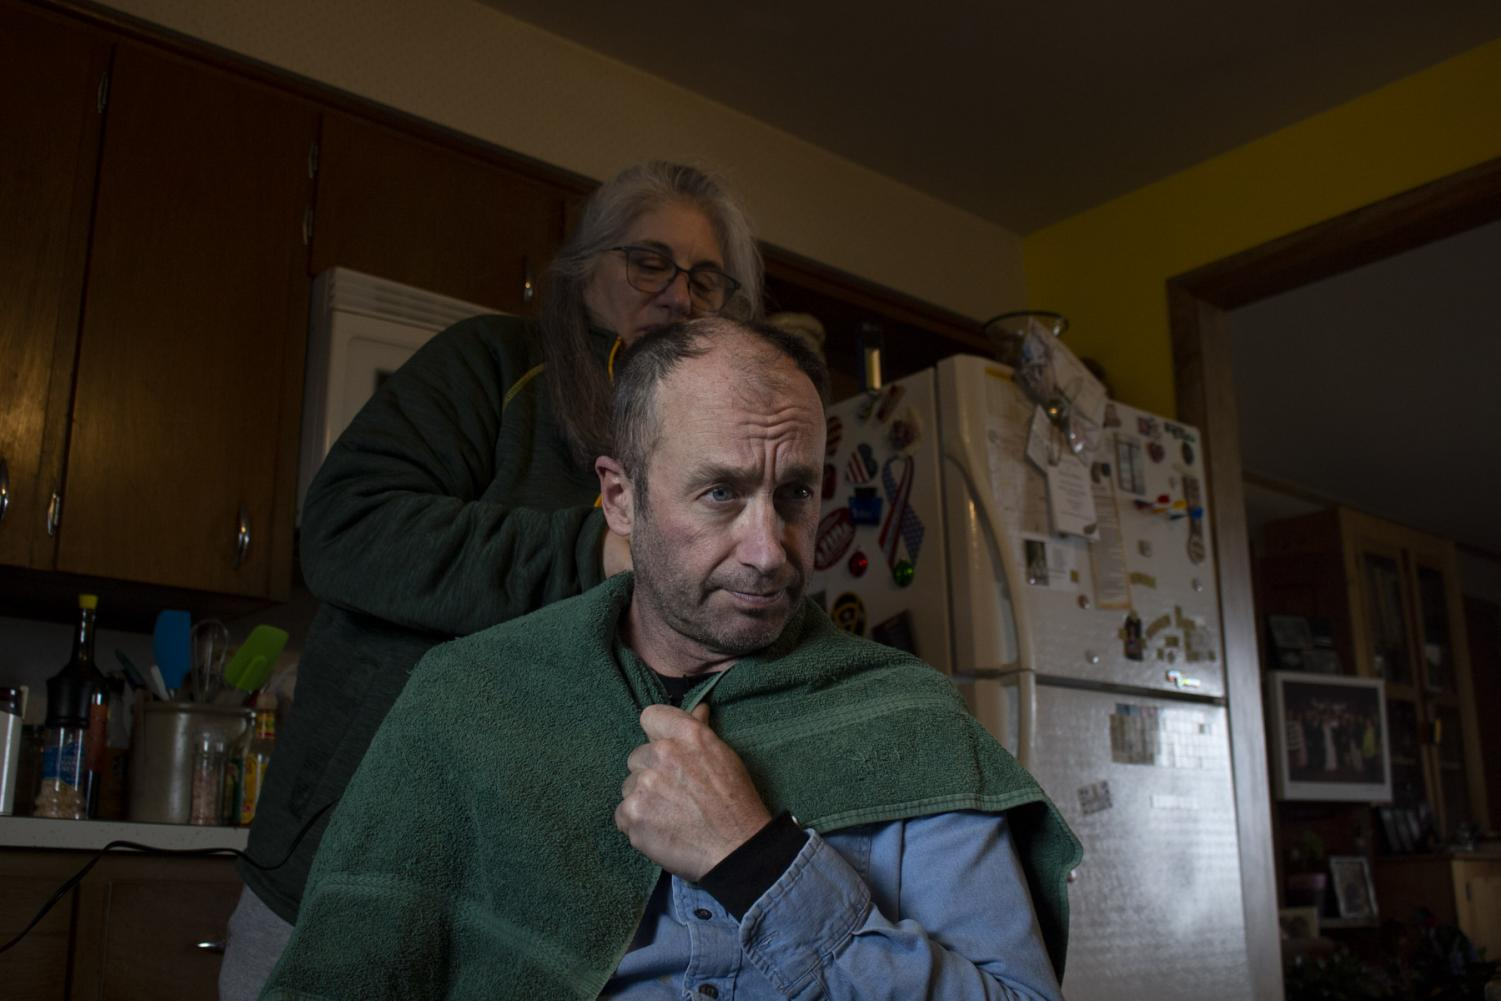 Terese Brunner cuts Mitch Schrage's hair at home while barber shops remain closed in the area on April 15, at their home in New Holstein, Wis. Schrage occasionally gets his haircut at a barbershop and usually has Brunner trim his hair in-between visits.